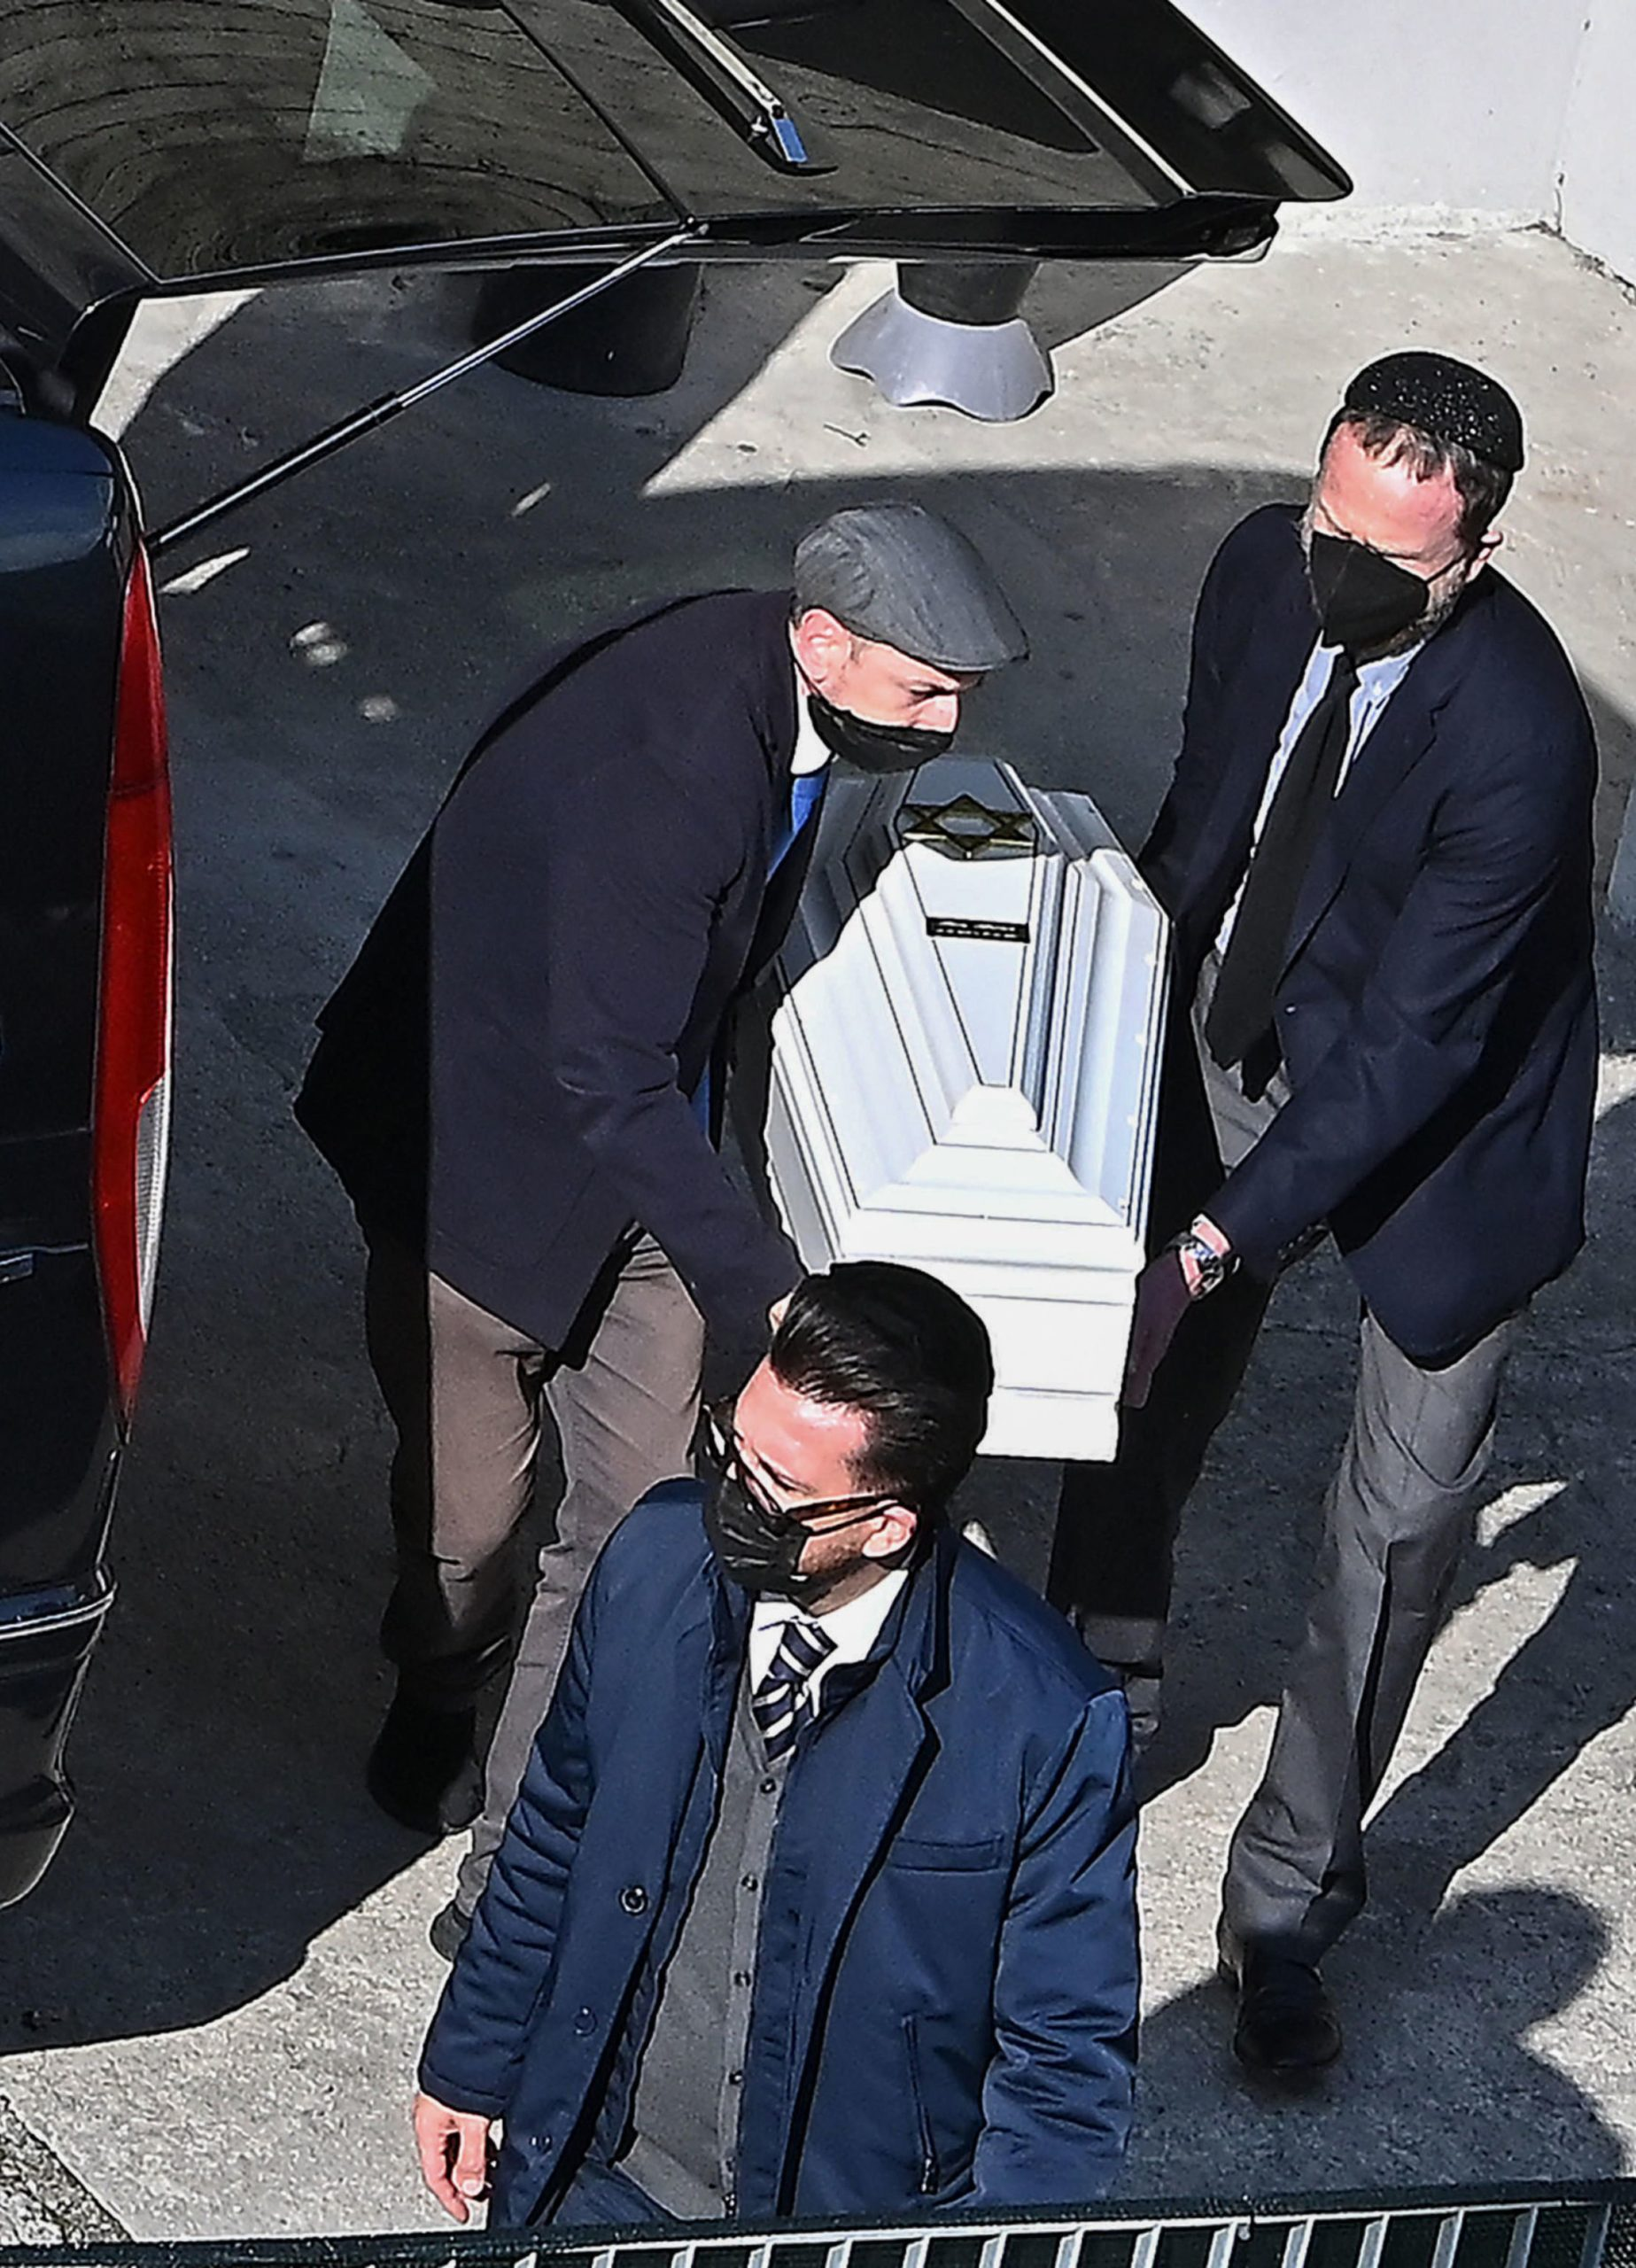 A photo obtained from Italian news agency Ansa and taken on May 26, 2021 outside the morgue of the Castelli hospital of Verbania-Pallanza on Lake Maggiore, shows people carrying the coffin of one of the Israeli victims of the cable car crash that occured in nearby Stresa on May 23.